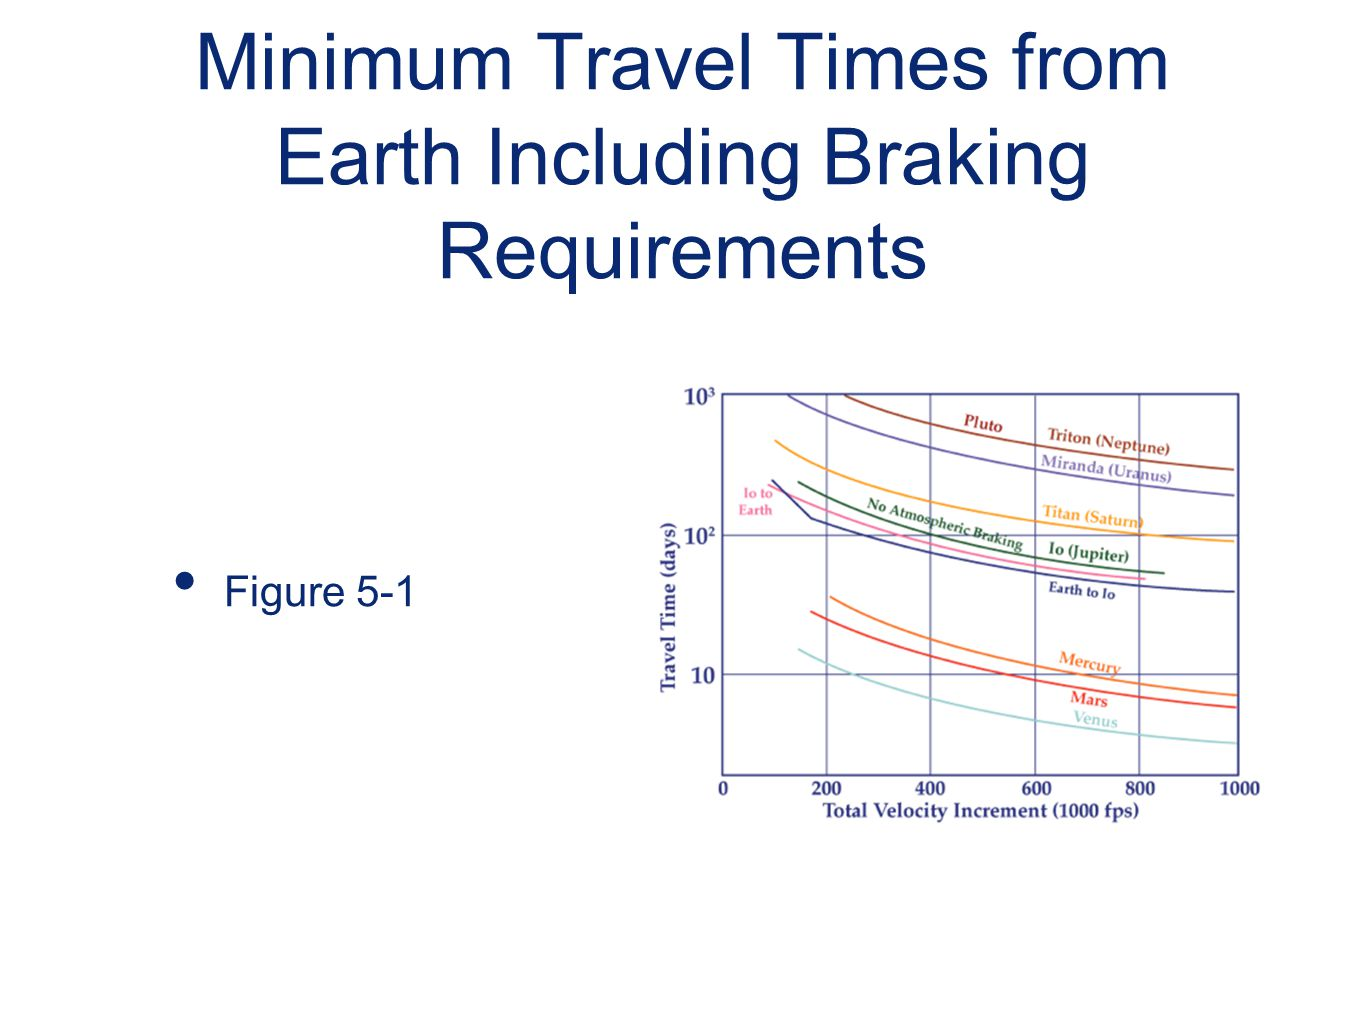 Minimum Travel Times from Earth Including Braking Requirements